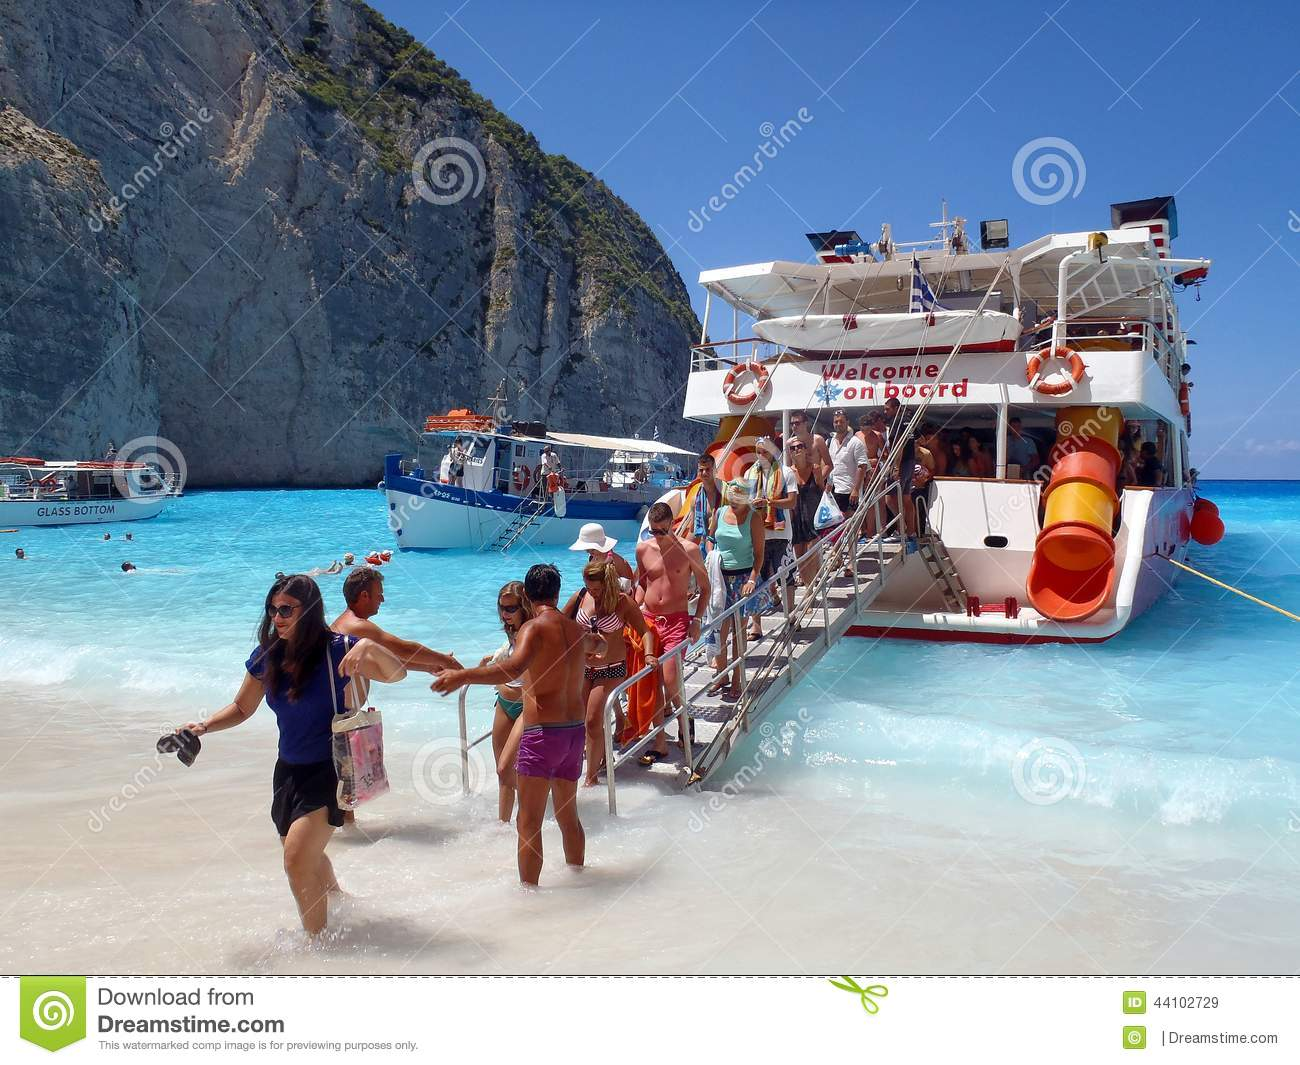 ... , Beach on Zakynthos is reached by boat. Tourists exiting cruise boat